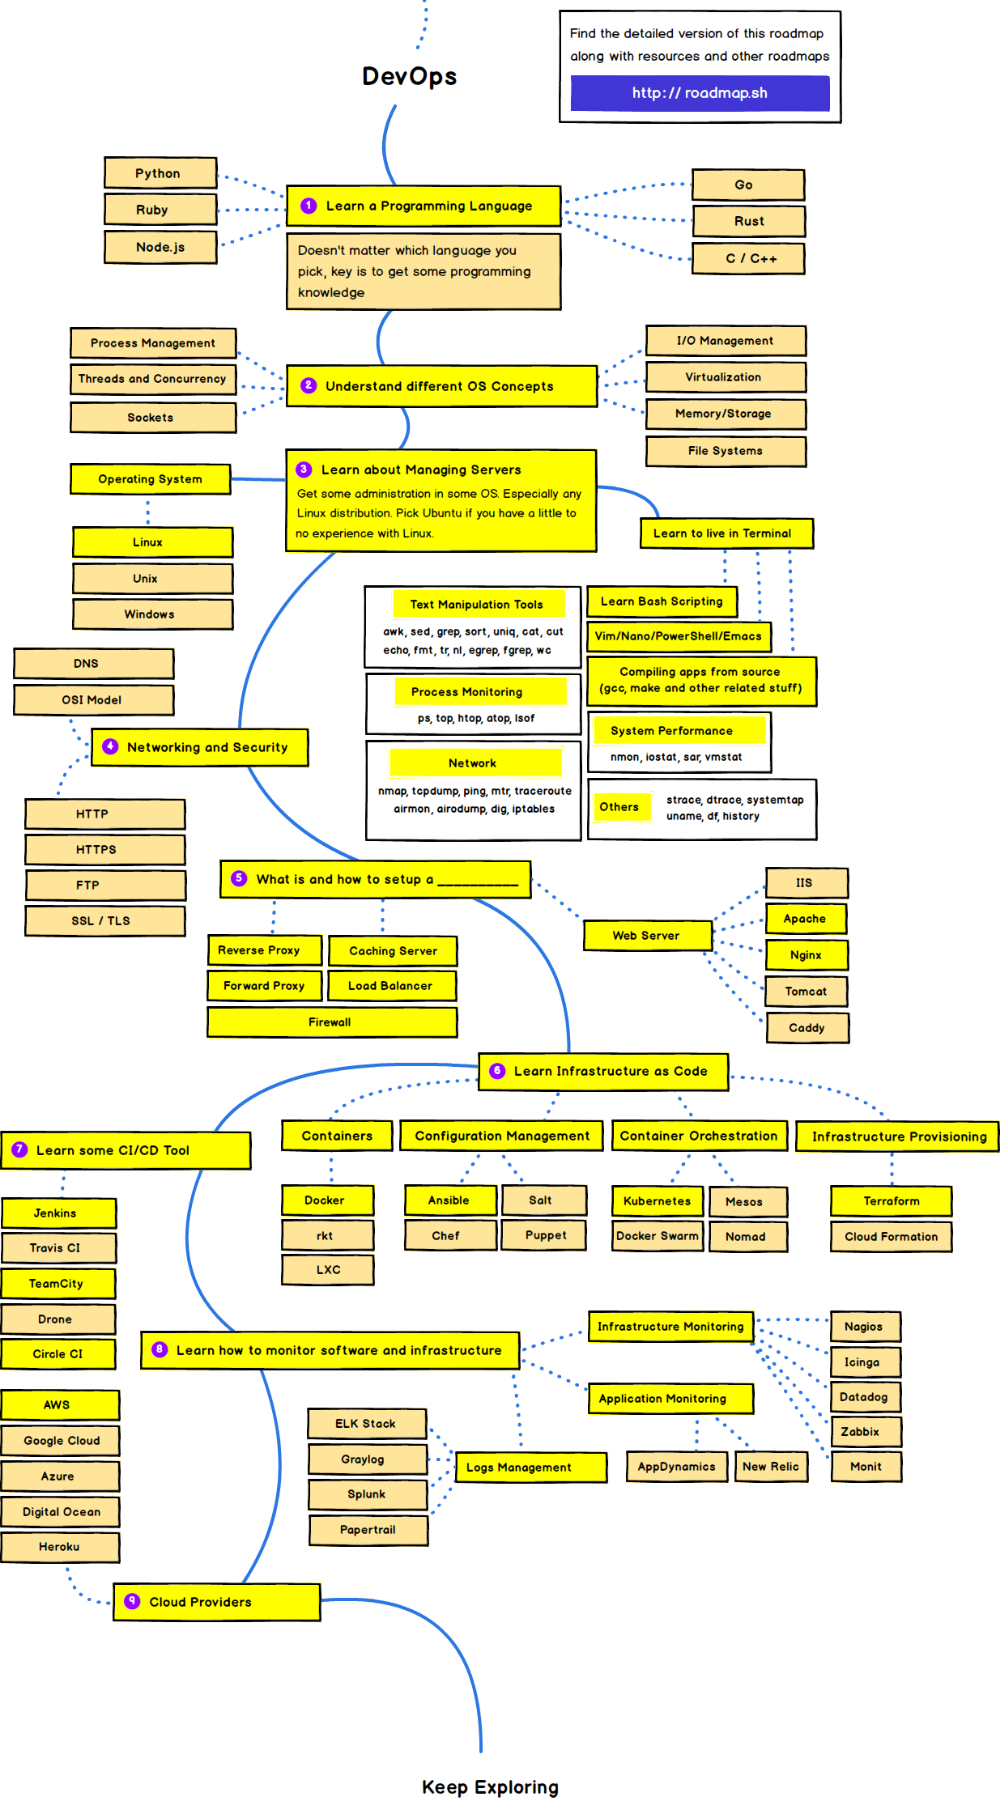 kamranahmedse/developerroadmap roadmap to a web cv sample pdf for freshers embedded software engineer resume format computer science engineering students